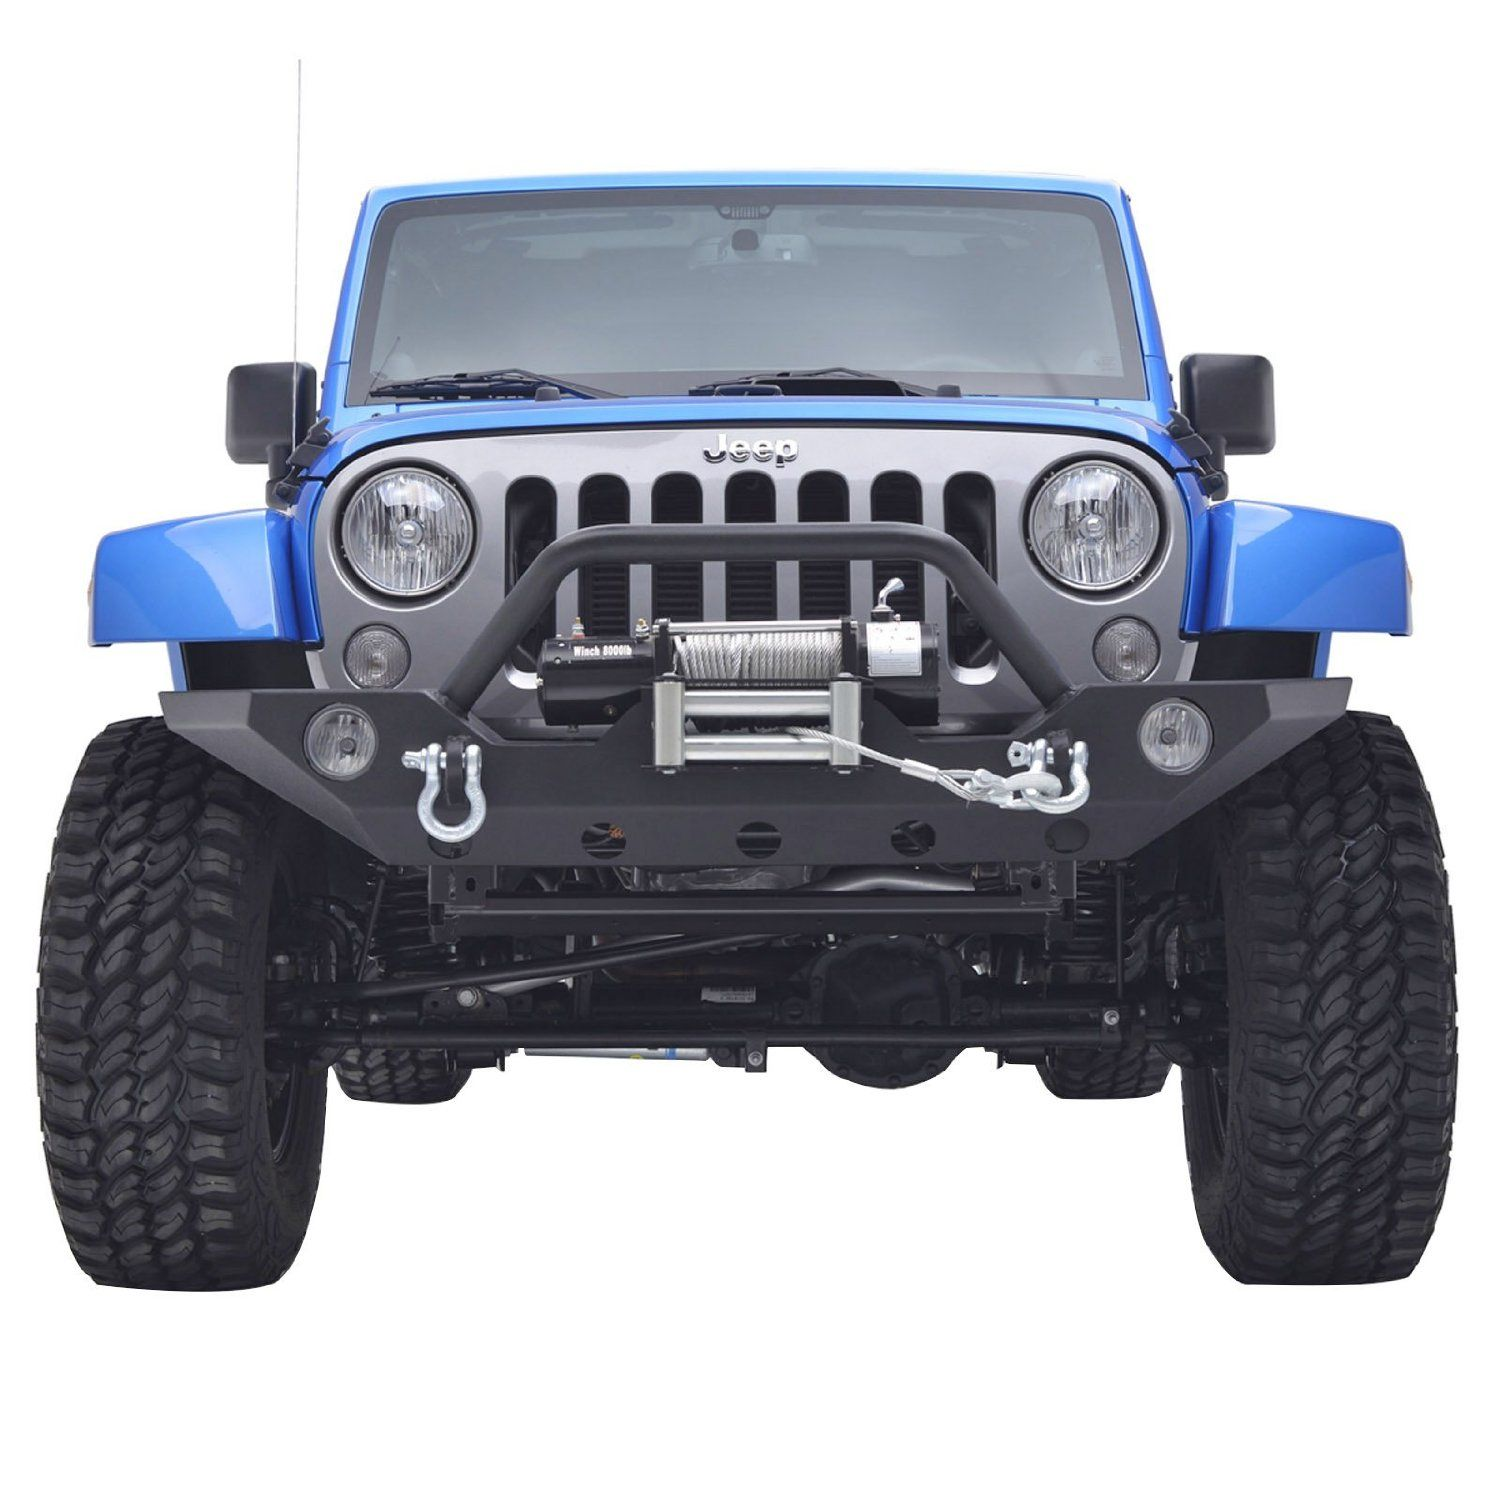 E Autogrilles 07 17 Jeep Wrangler Jk Rock Crawler Offroad Front Bumper With Winch Mounting Plate 51 0328 Jeep Wrangler Jk Jeep Wrangler Jeep Wrangler Diy